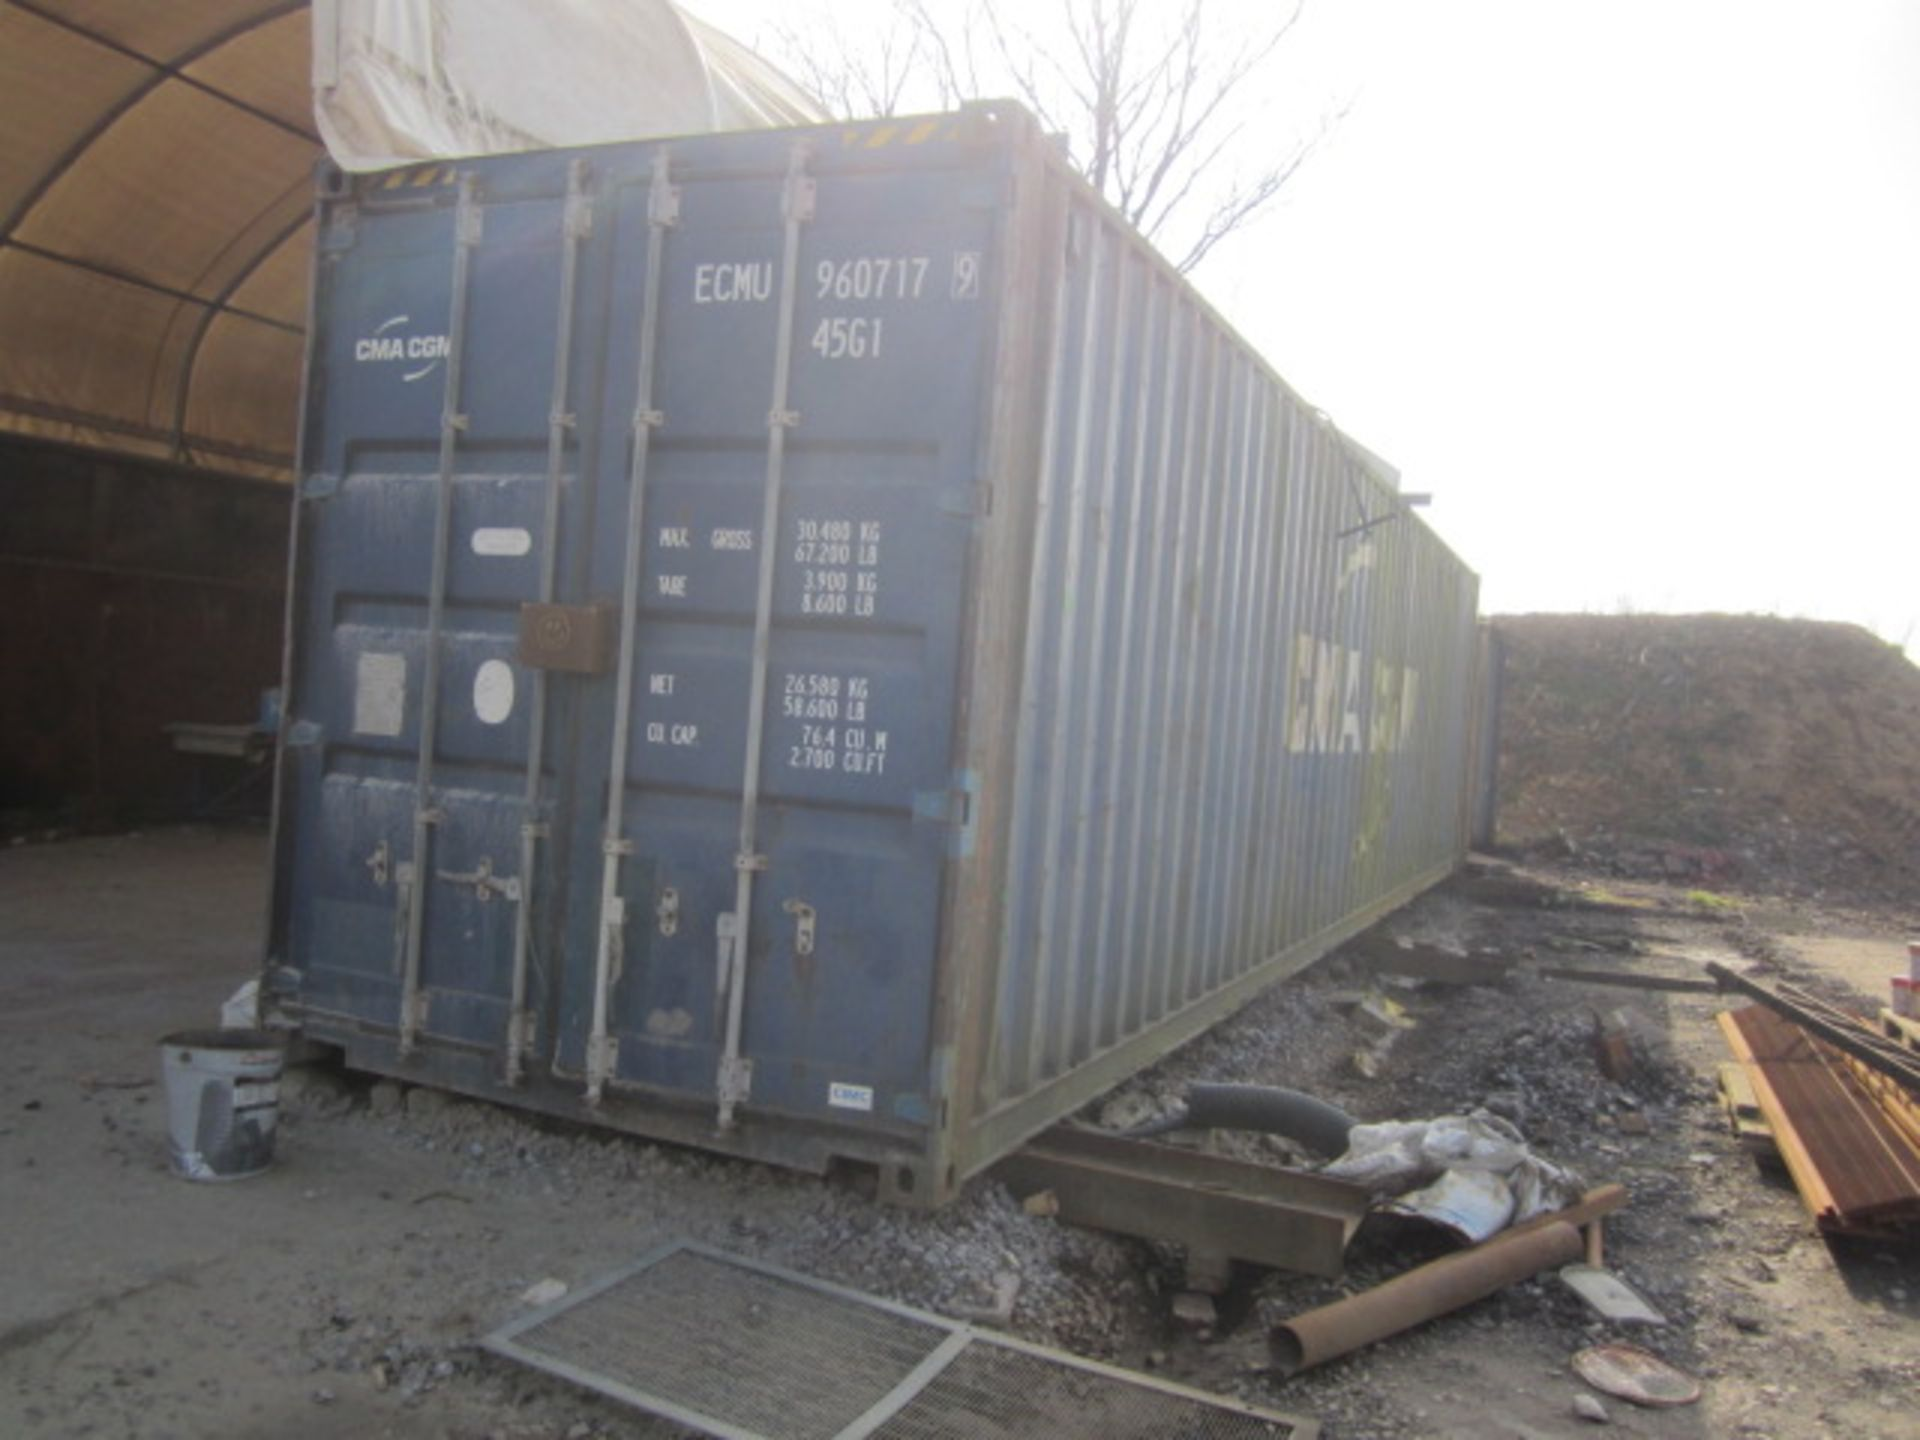 40ft export storage container, serial no. CIMC1532 2223 (2005) - Electrical disconnection required.